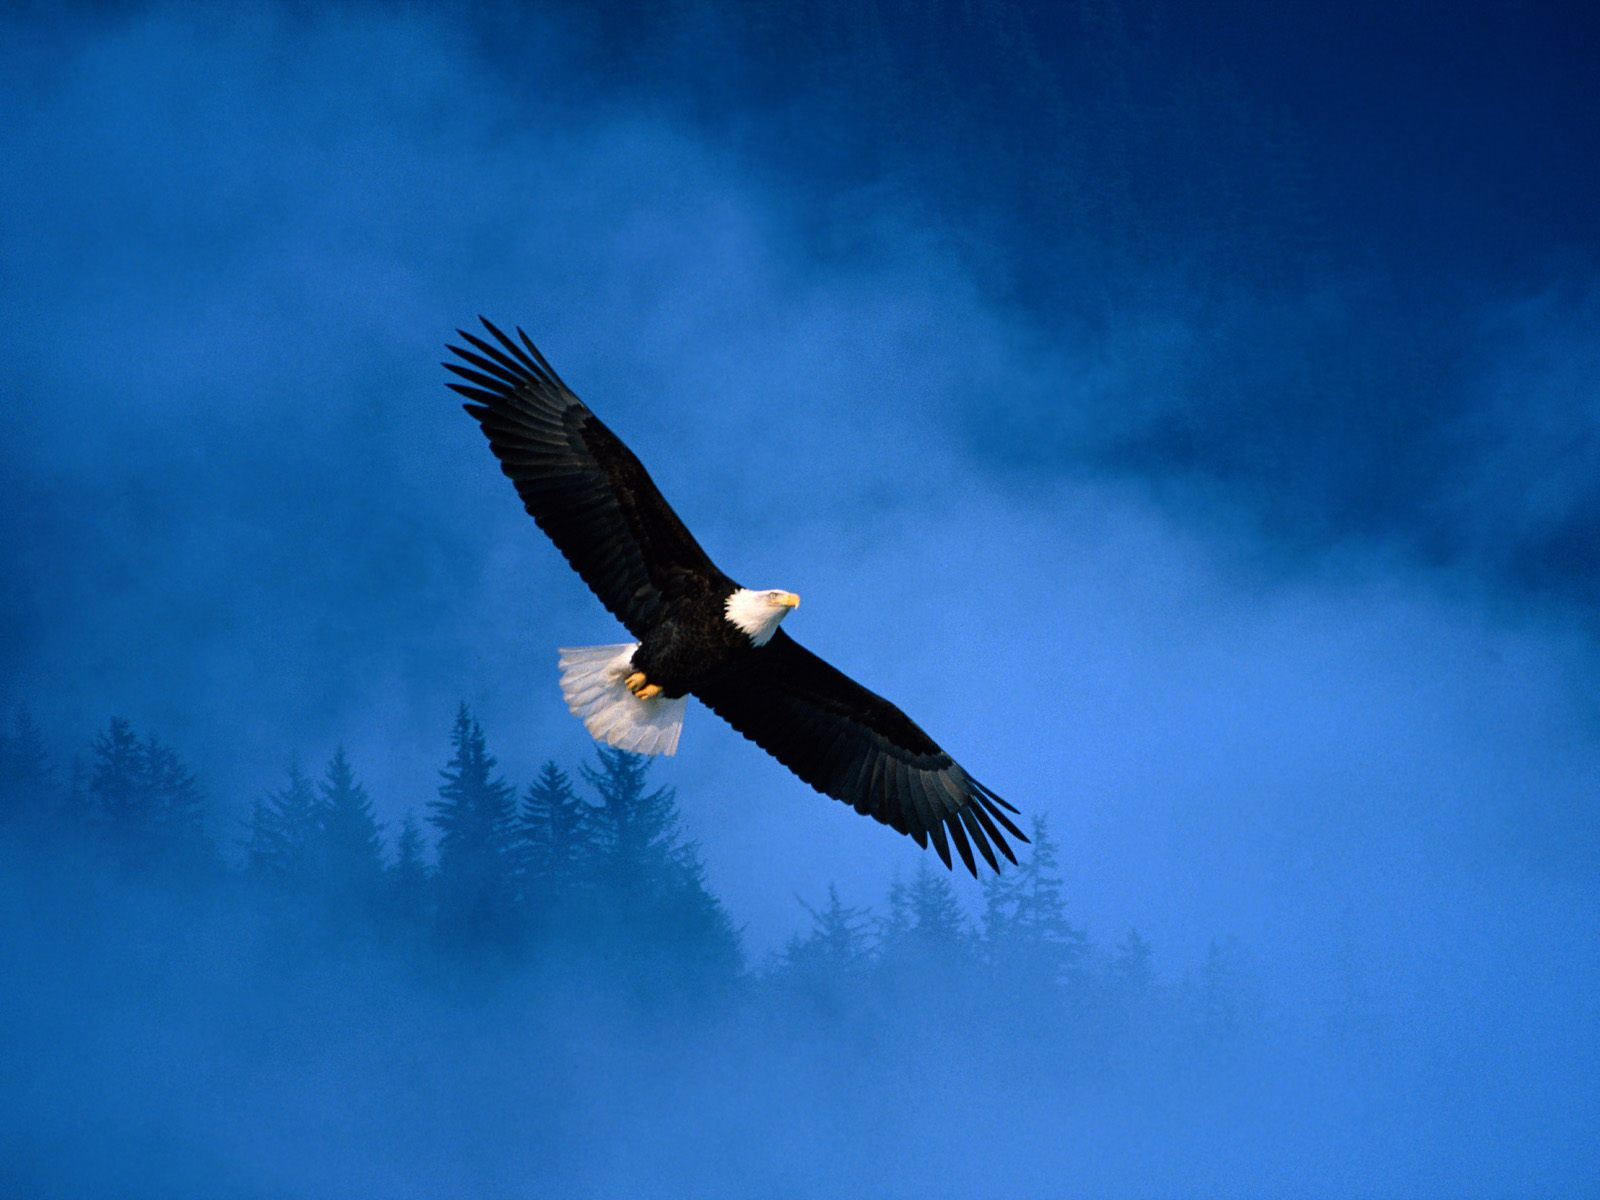 Flight of Freedom Bald Eagle 361.23 Kb